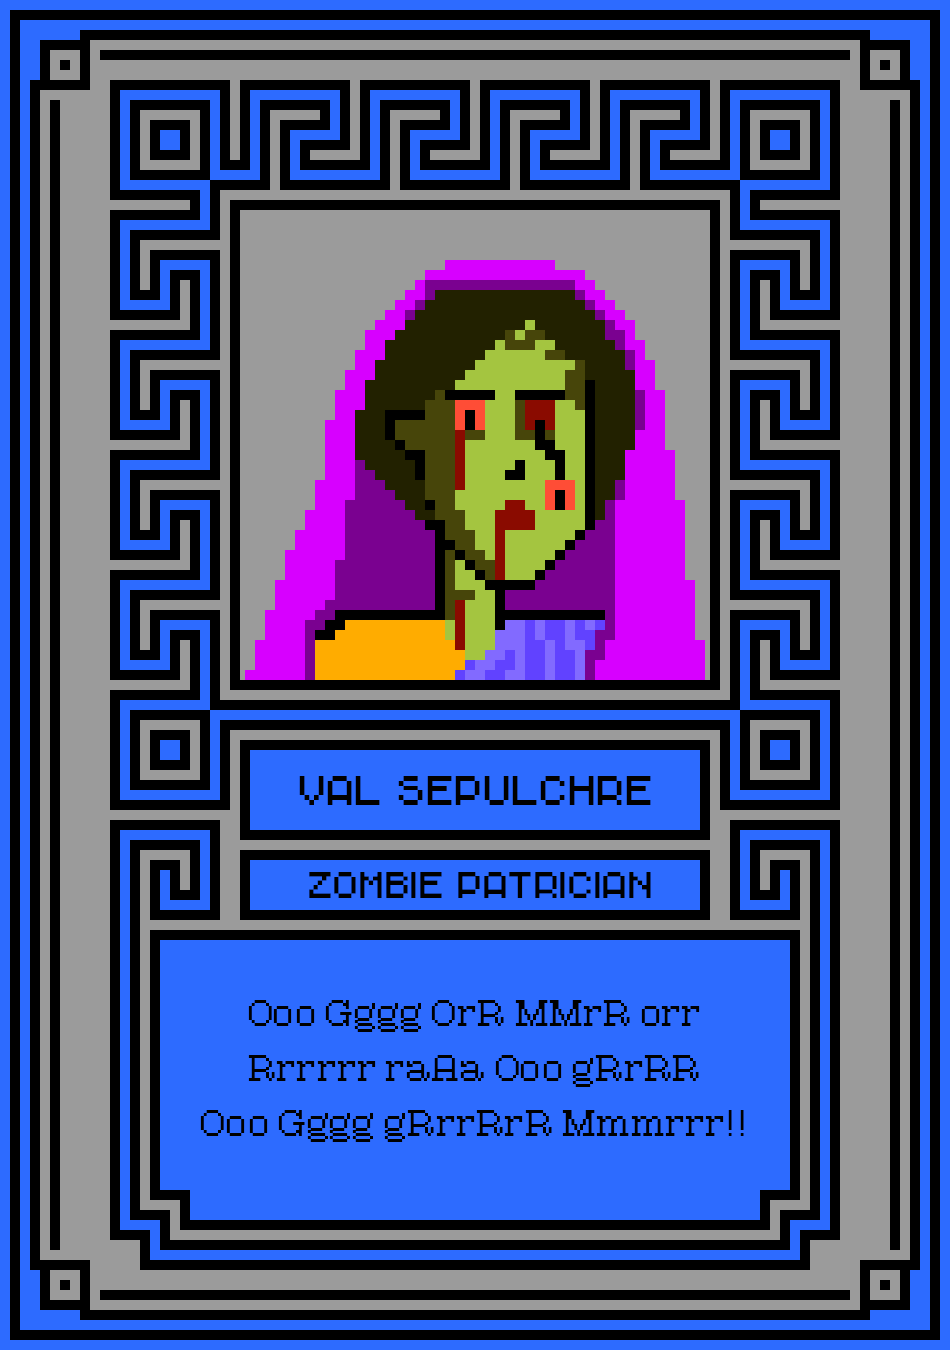 102 - Val Sepulchre Zombie Patrician